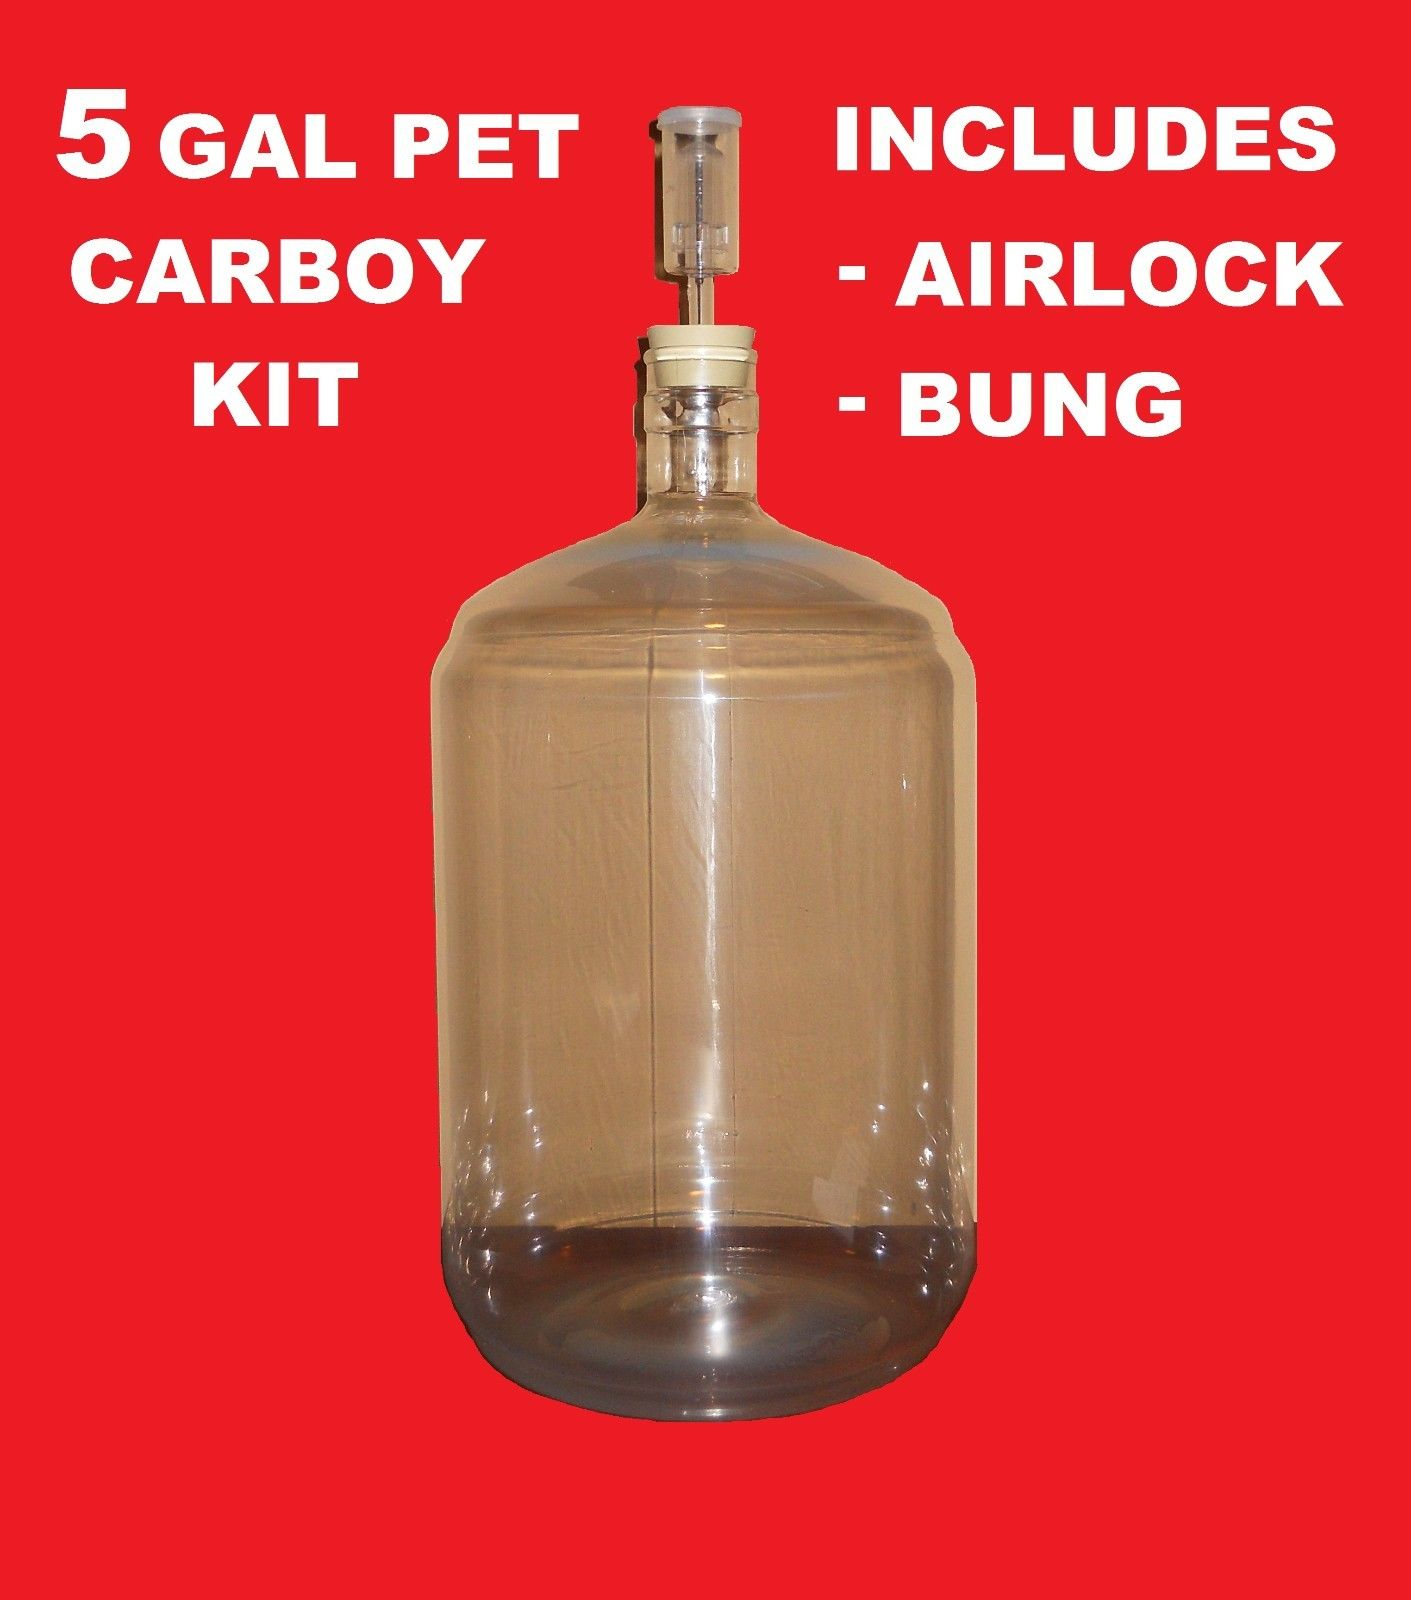 PET CARBOY KIT 5 GAL W AIRLOCK BUNG FOR SECONDARY FERMENTATION OF BEER WINE